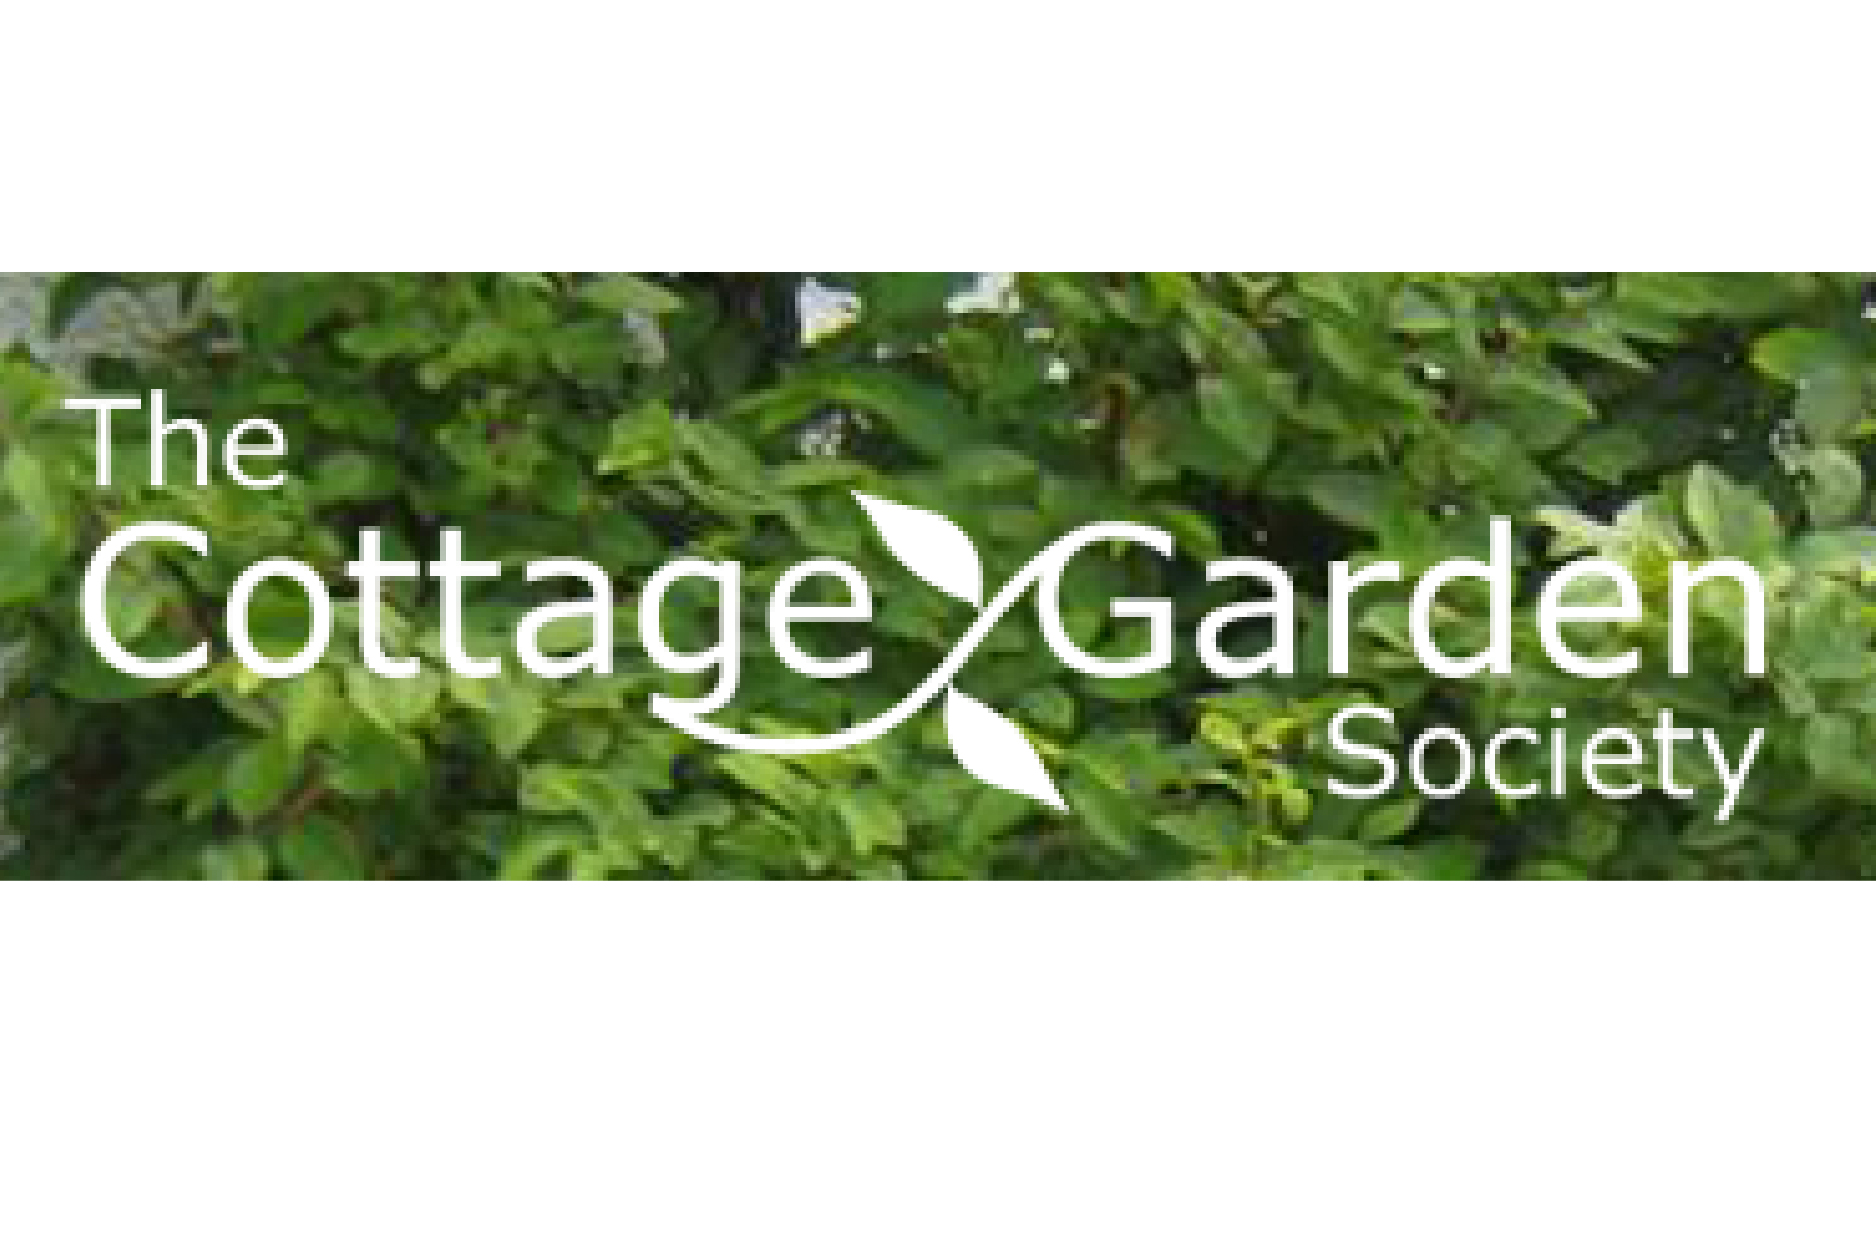 The Cottage Garden Society